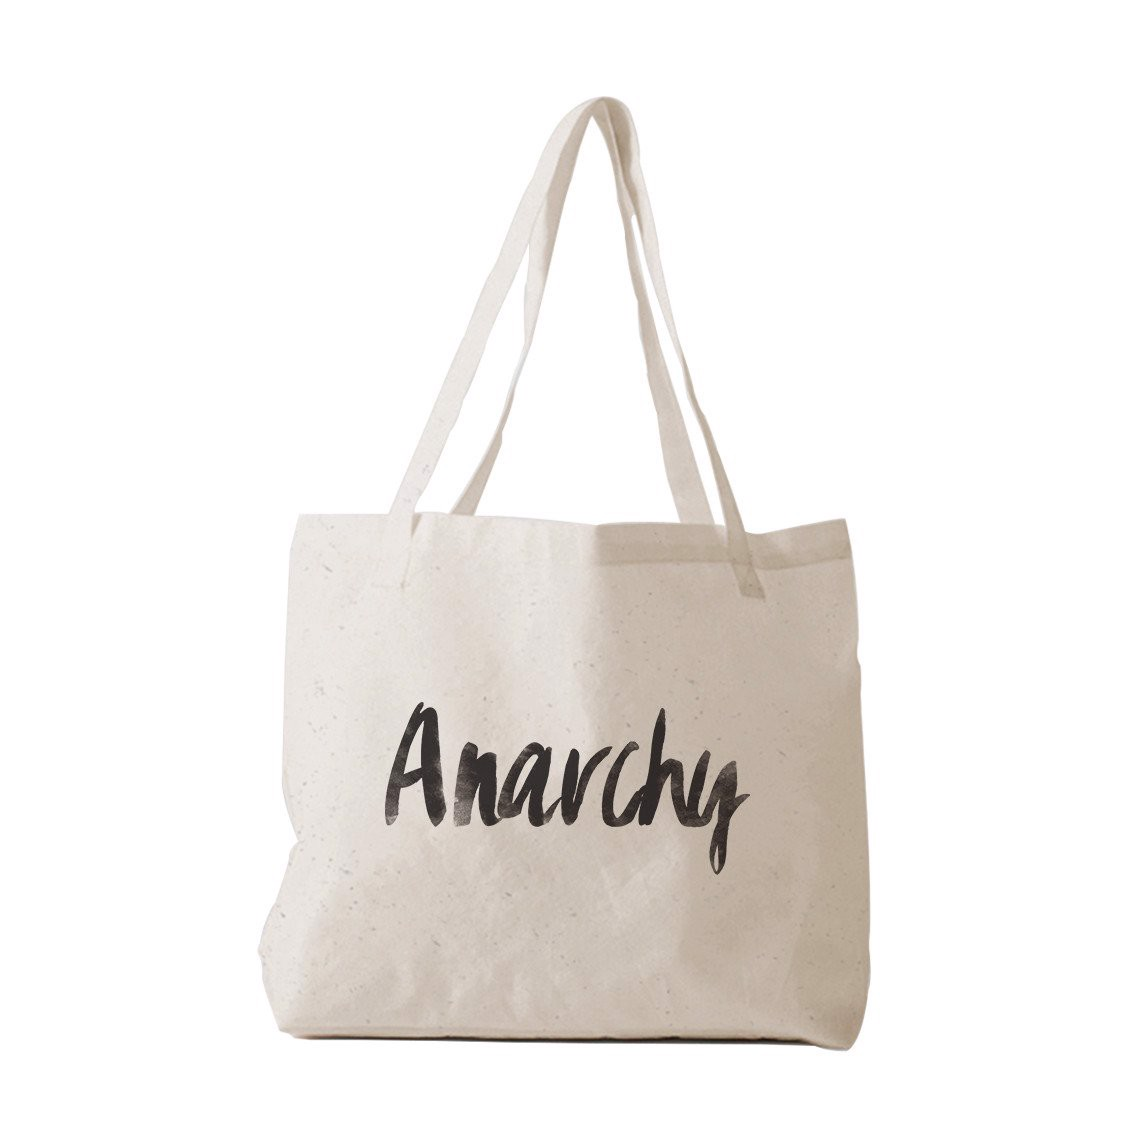 Tote Bag - Anarchy